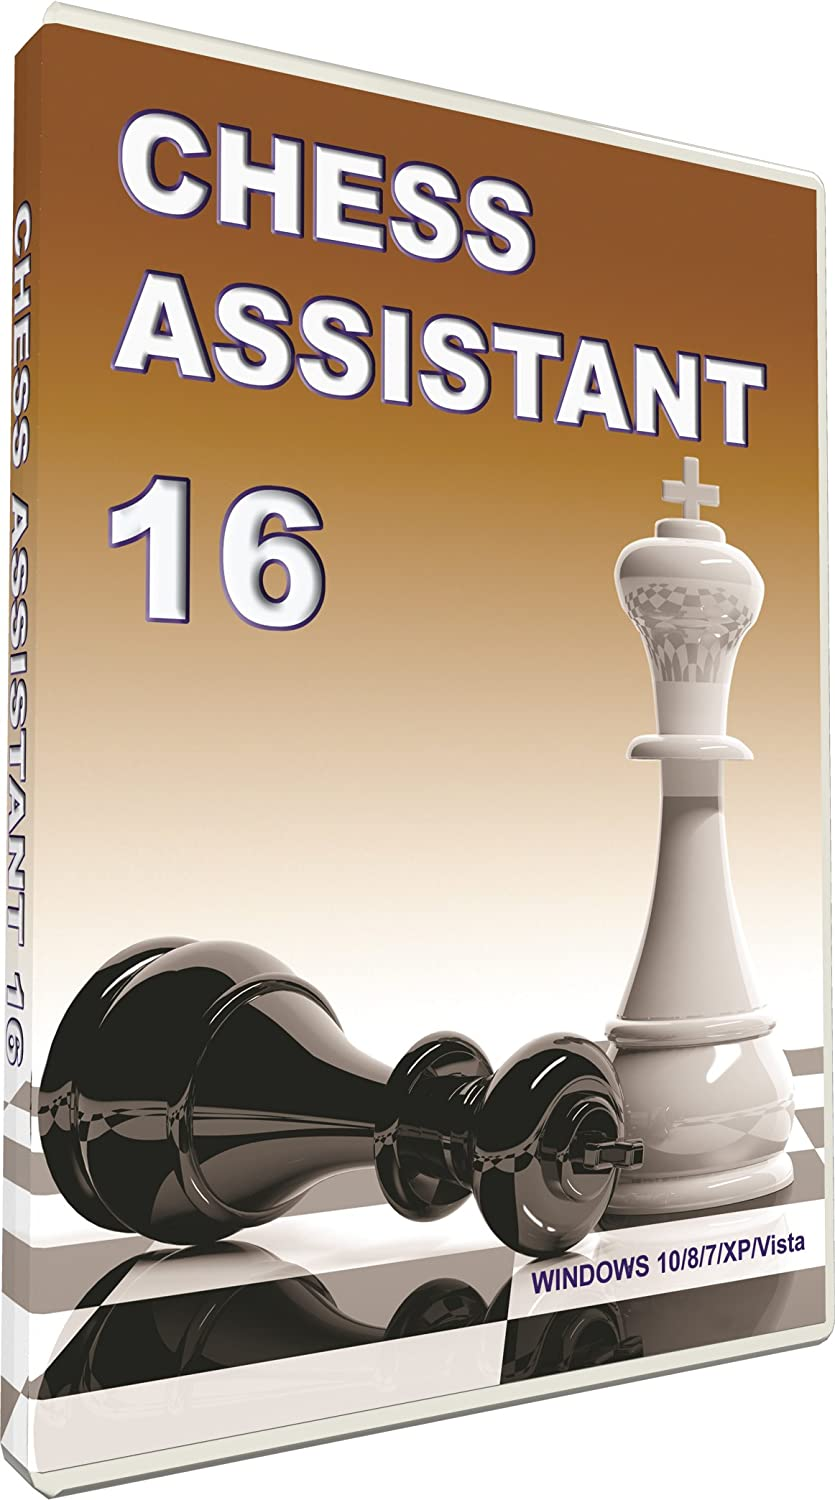 Chess assistant 10 rus